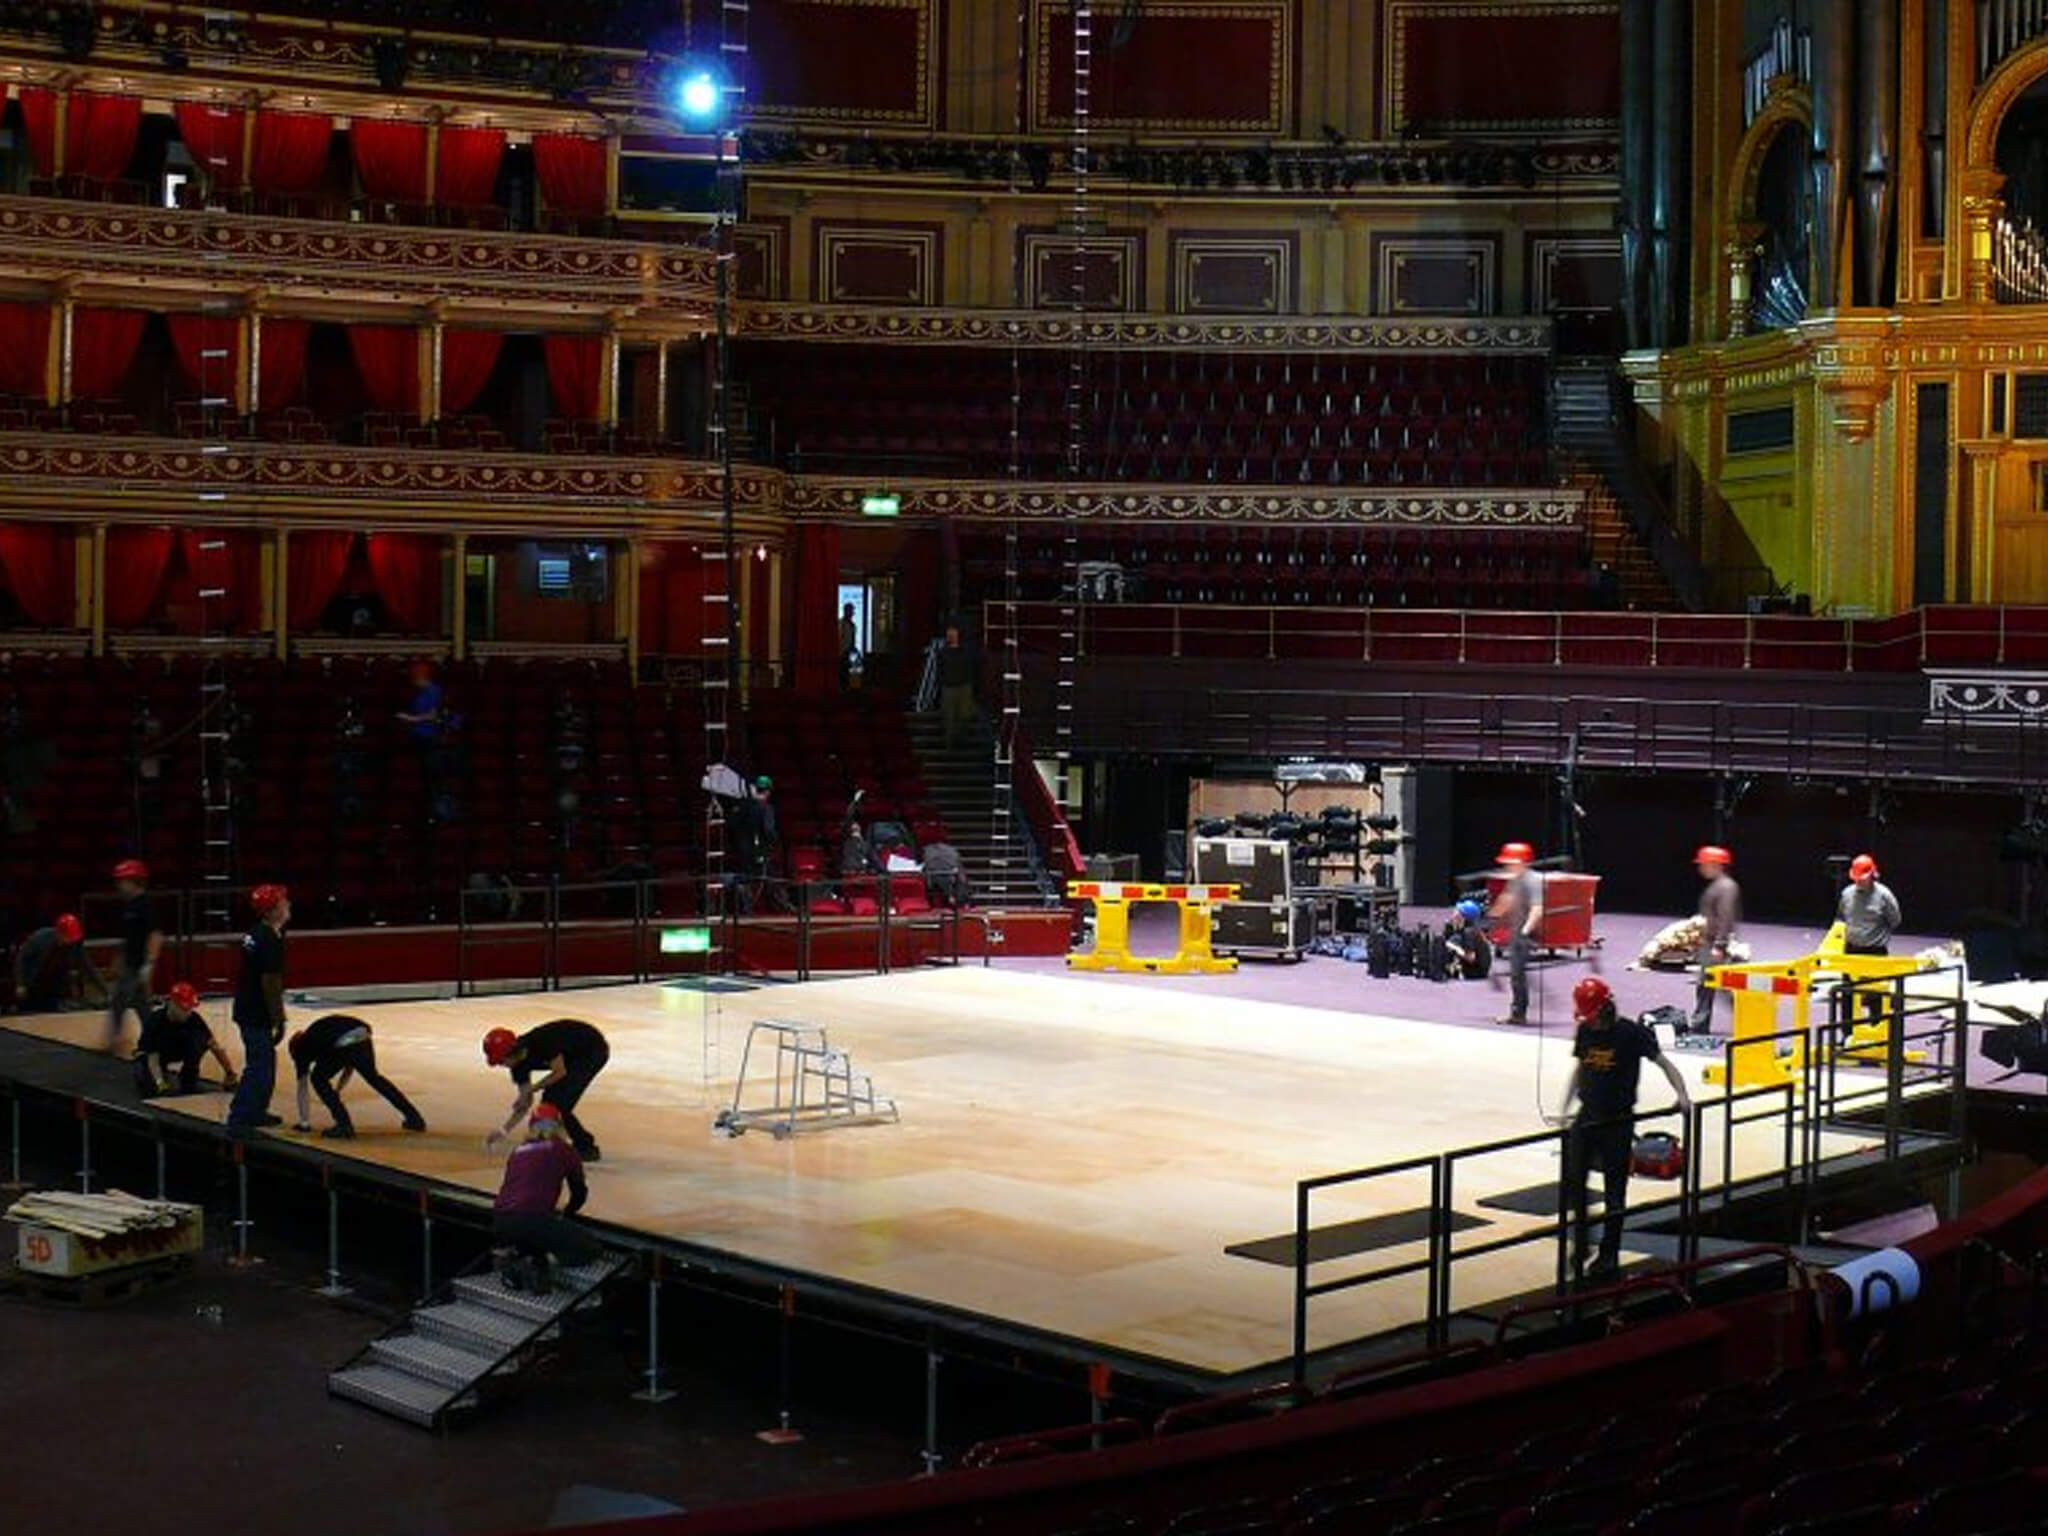 Harlequin stage at the Royal Albert Hall